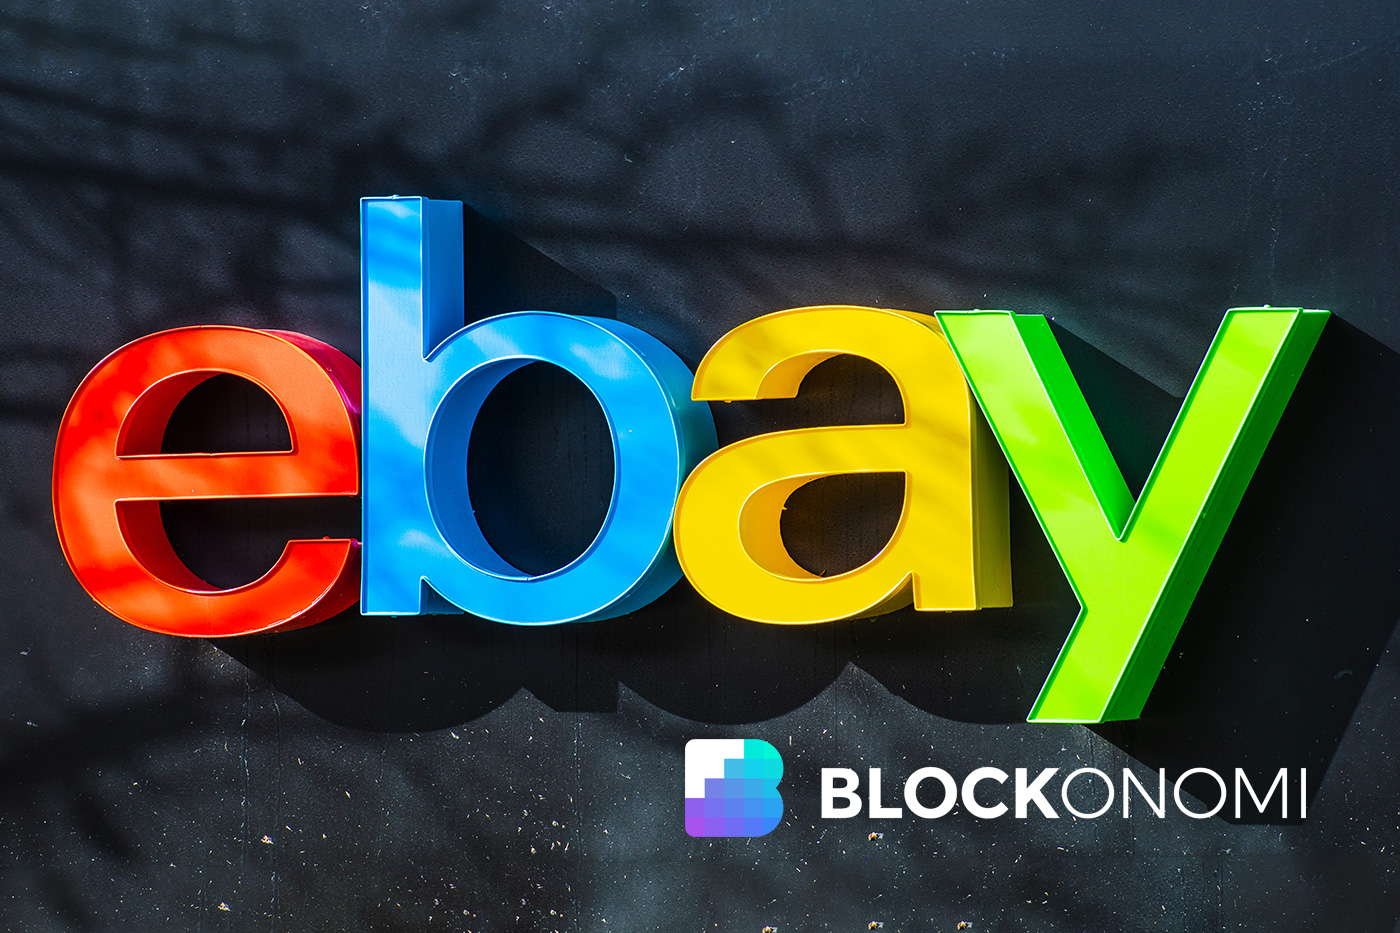 eBay is Considering Adding Crypto Payments & NFT Sales thumbnail